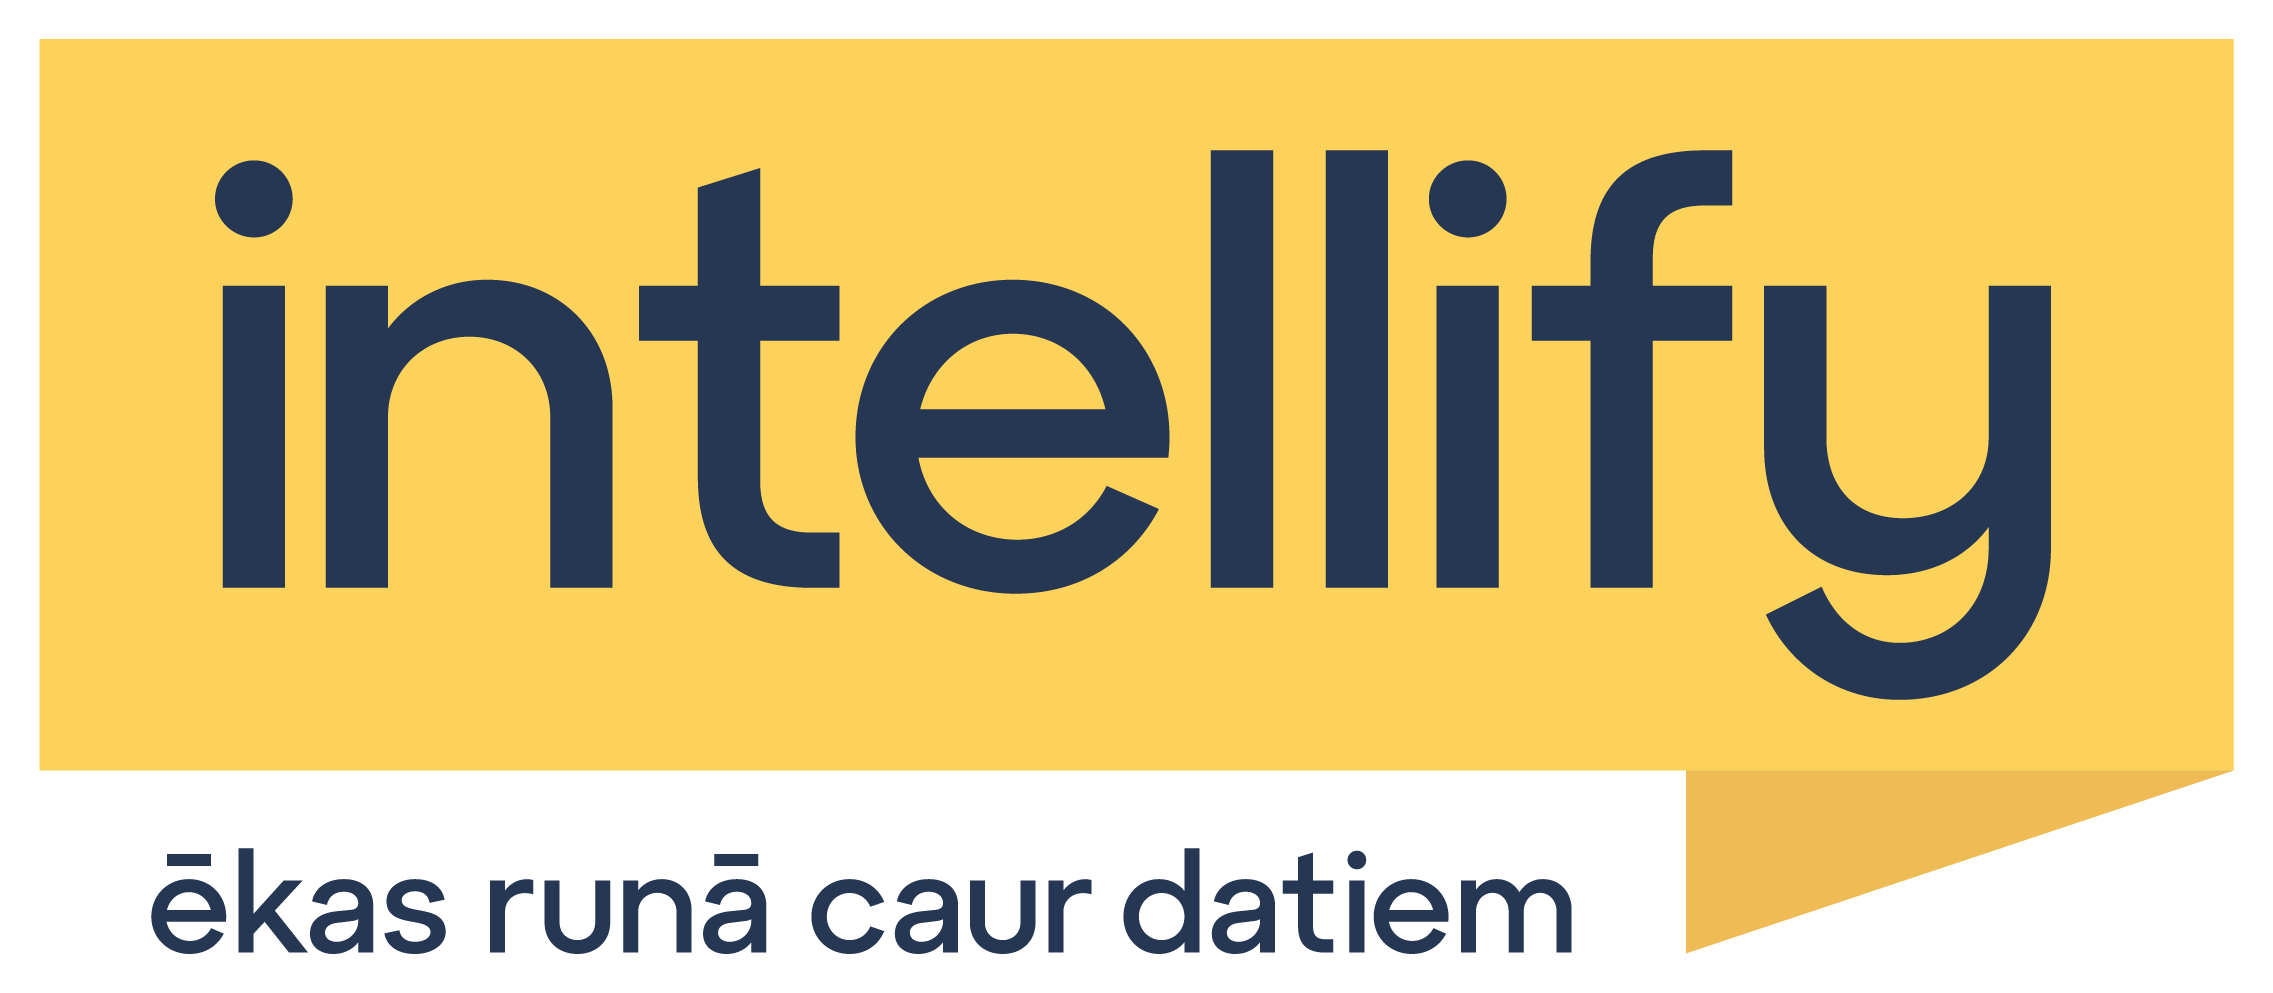 Intellify logo slogan